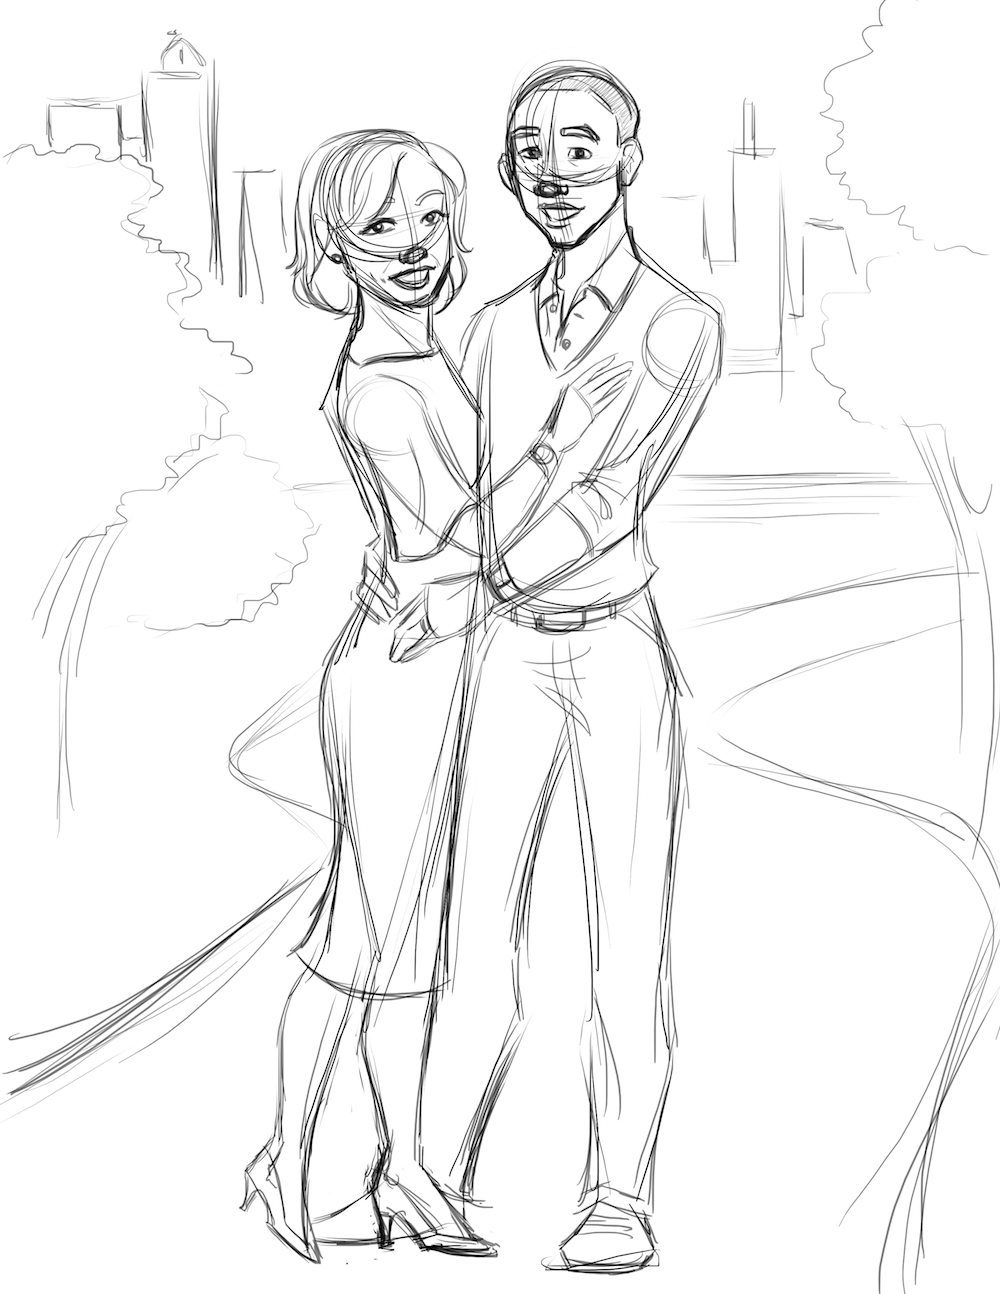 Sketch of a Couple by Drew Graham